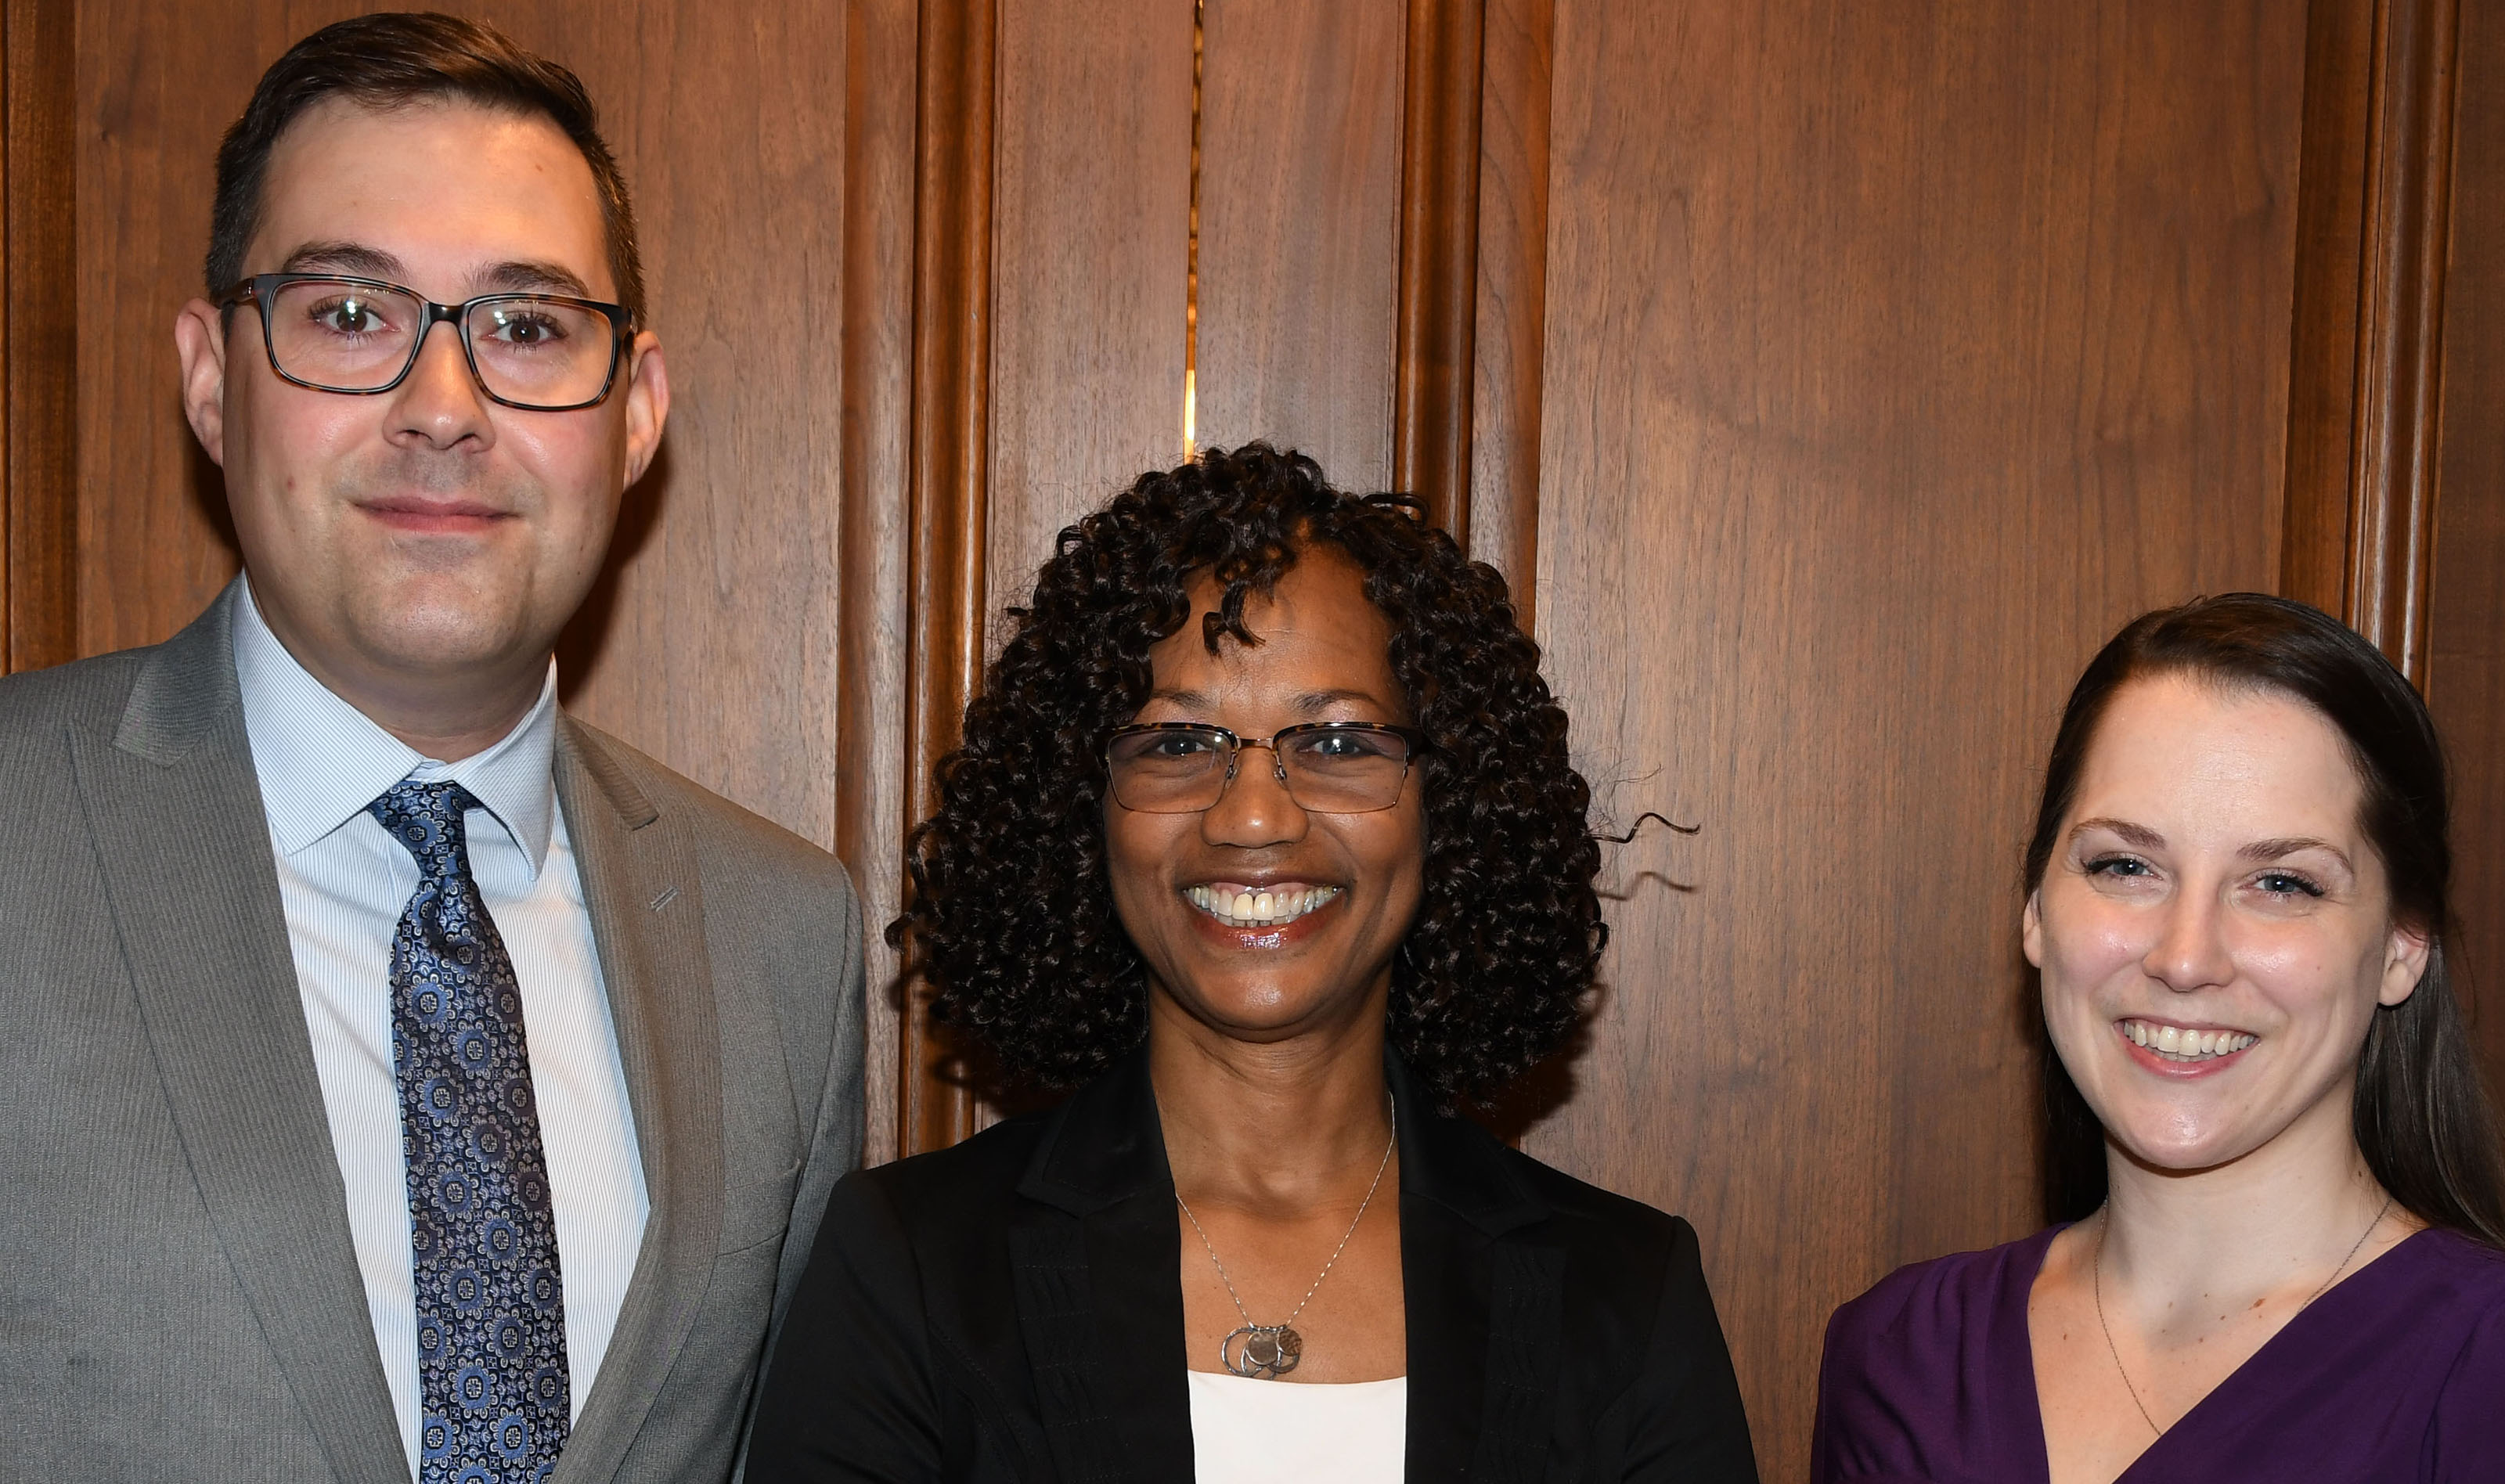 Dr. Sheridan Kingsberry (center), Delaware's 2018 Social Worker of the Year, poses with Michael Francum (l), executive director of the Delaware Chapter of the National Association of Social Workers, and Shannon Fisch, the president of the NASW-DE Board of Directors.